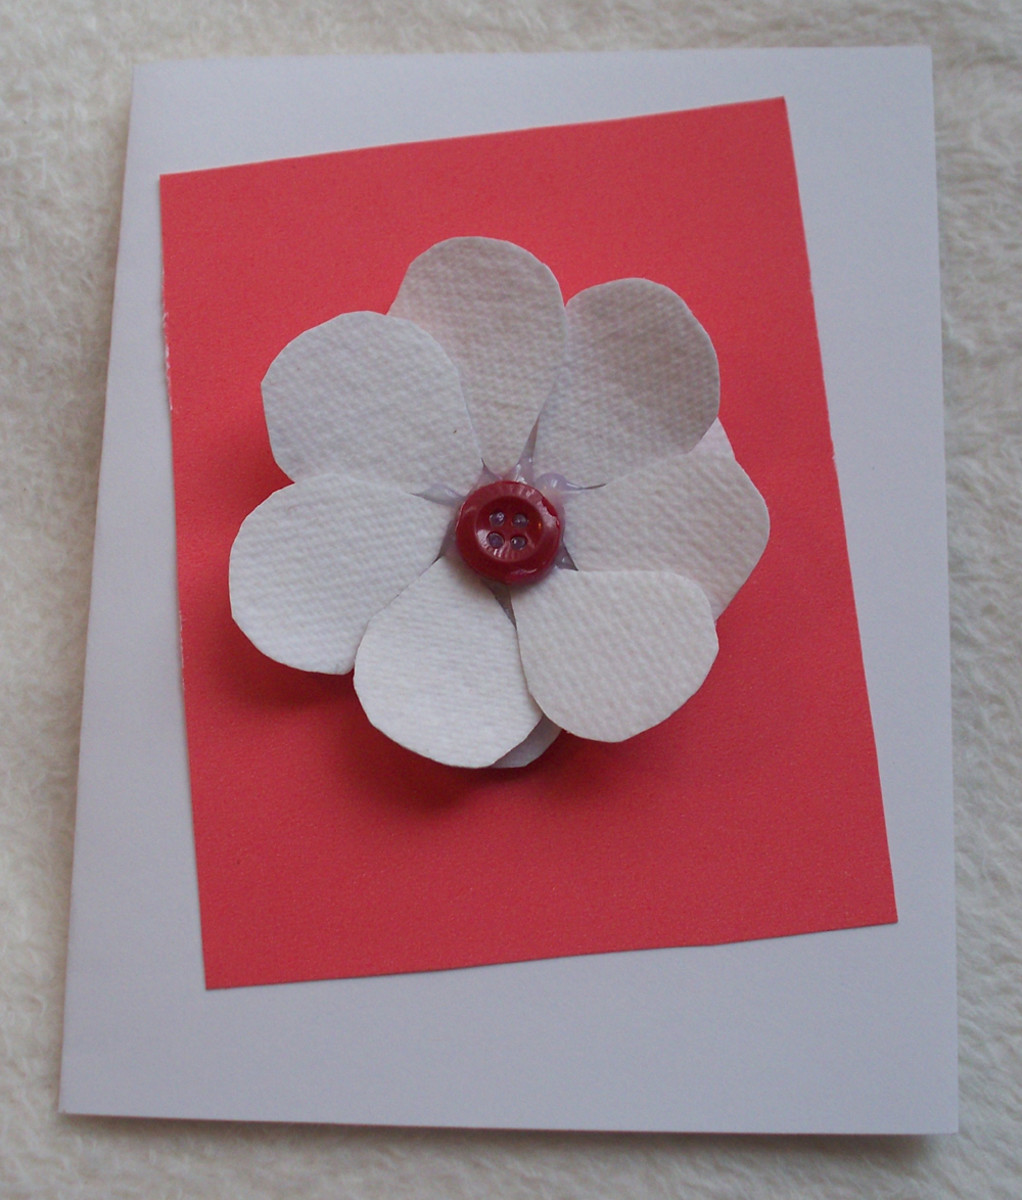 How to Make a Paper Towel Flower Greeting Card